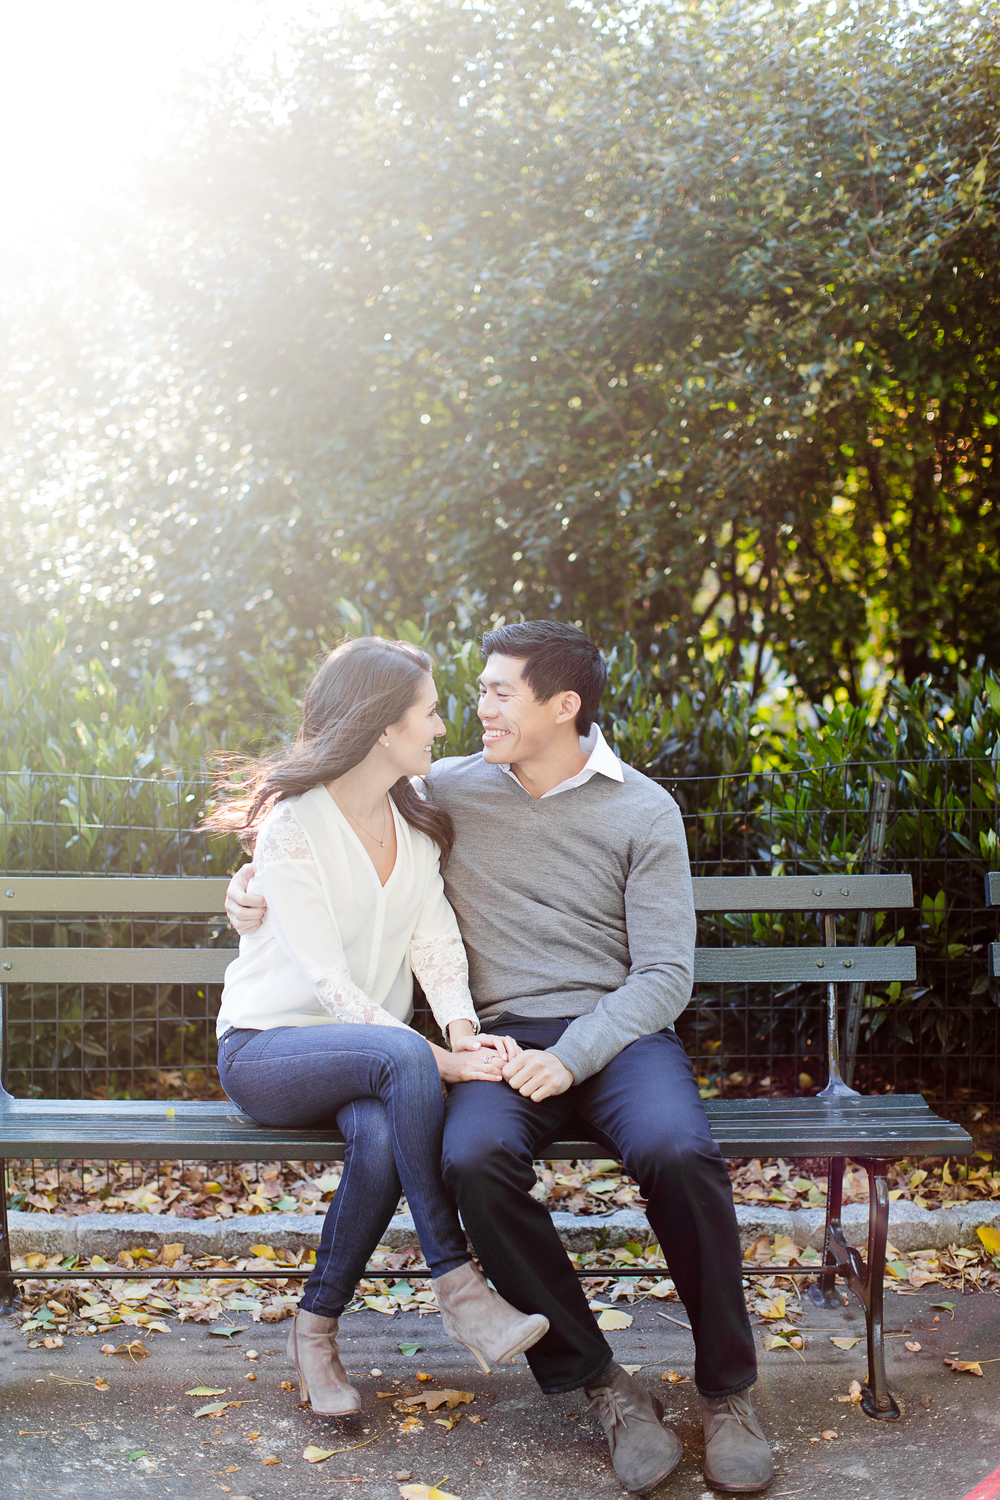 Melissa Kruse Photography - Emily + Kevin Engagement Session-113.jpg